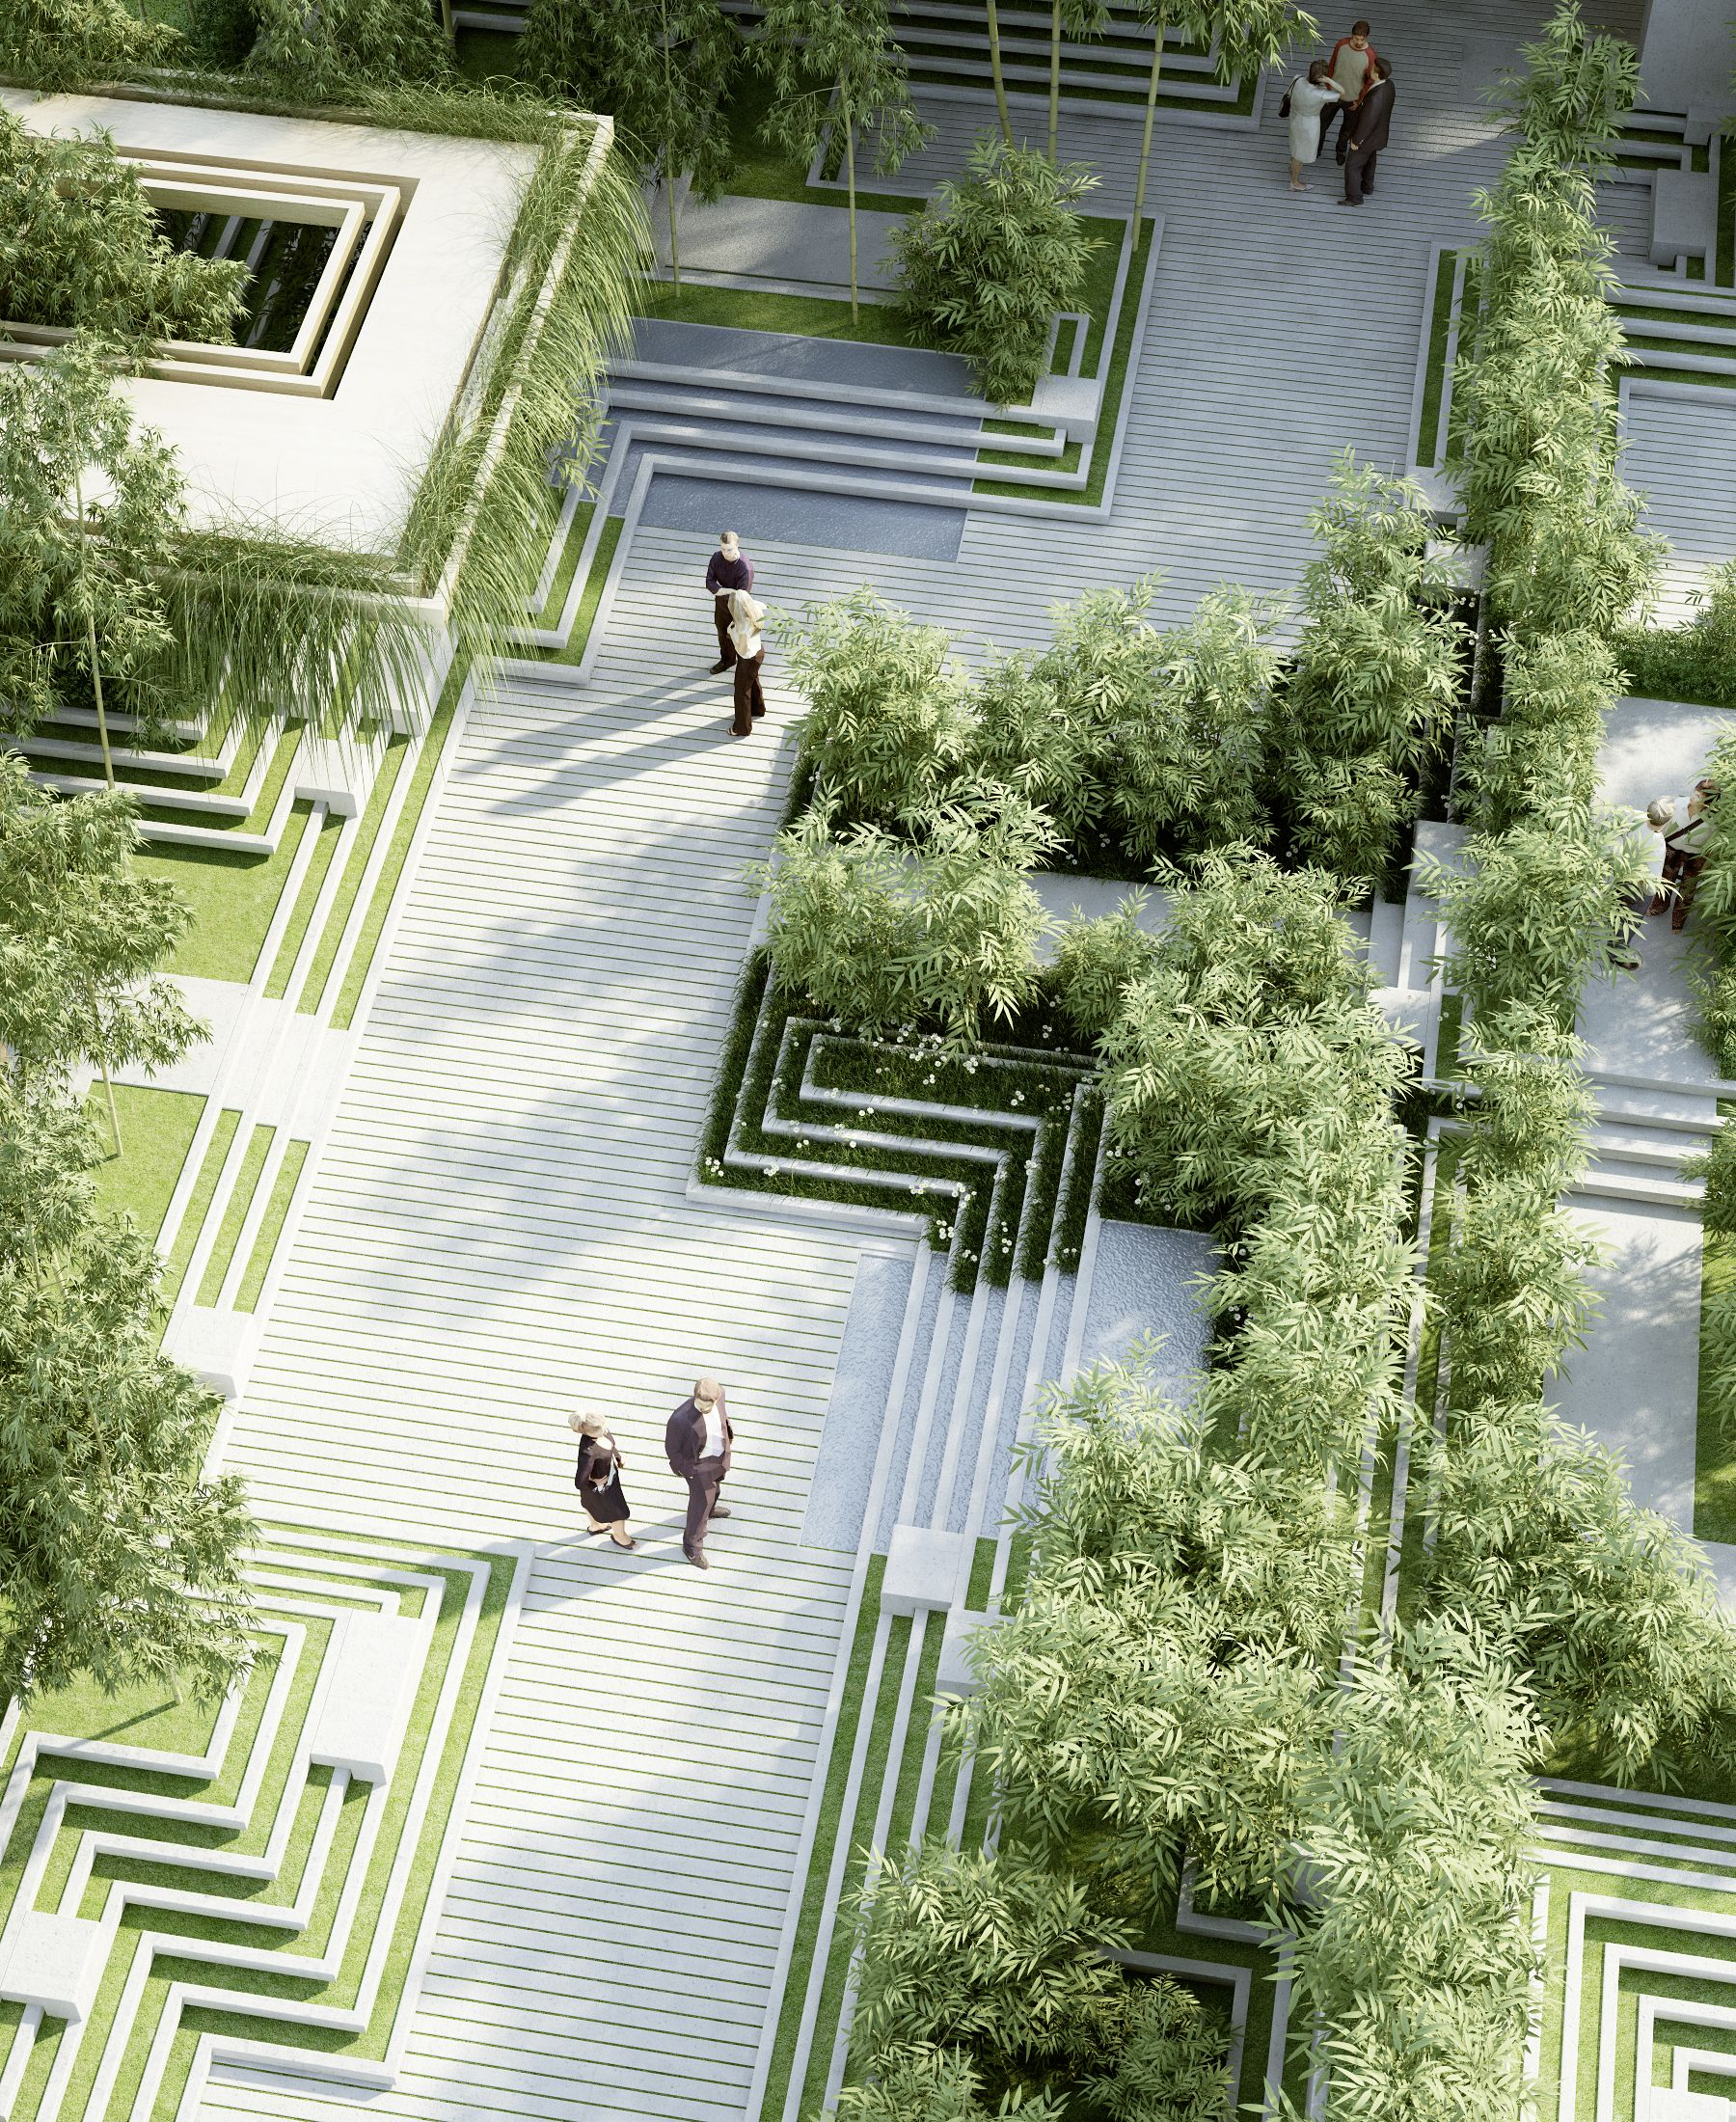 The project describes a landscape design and facade design for Indian garden design